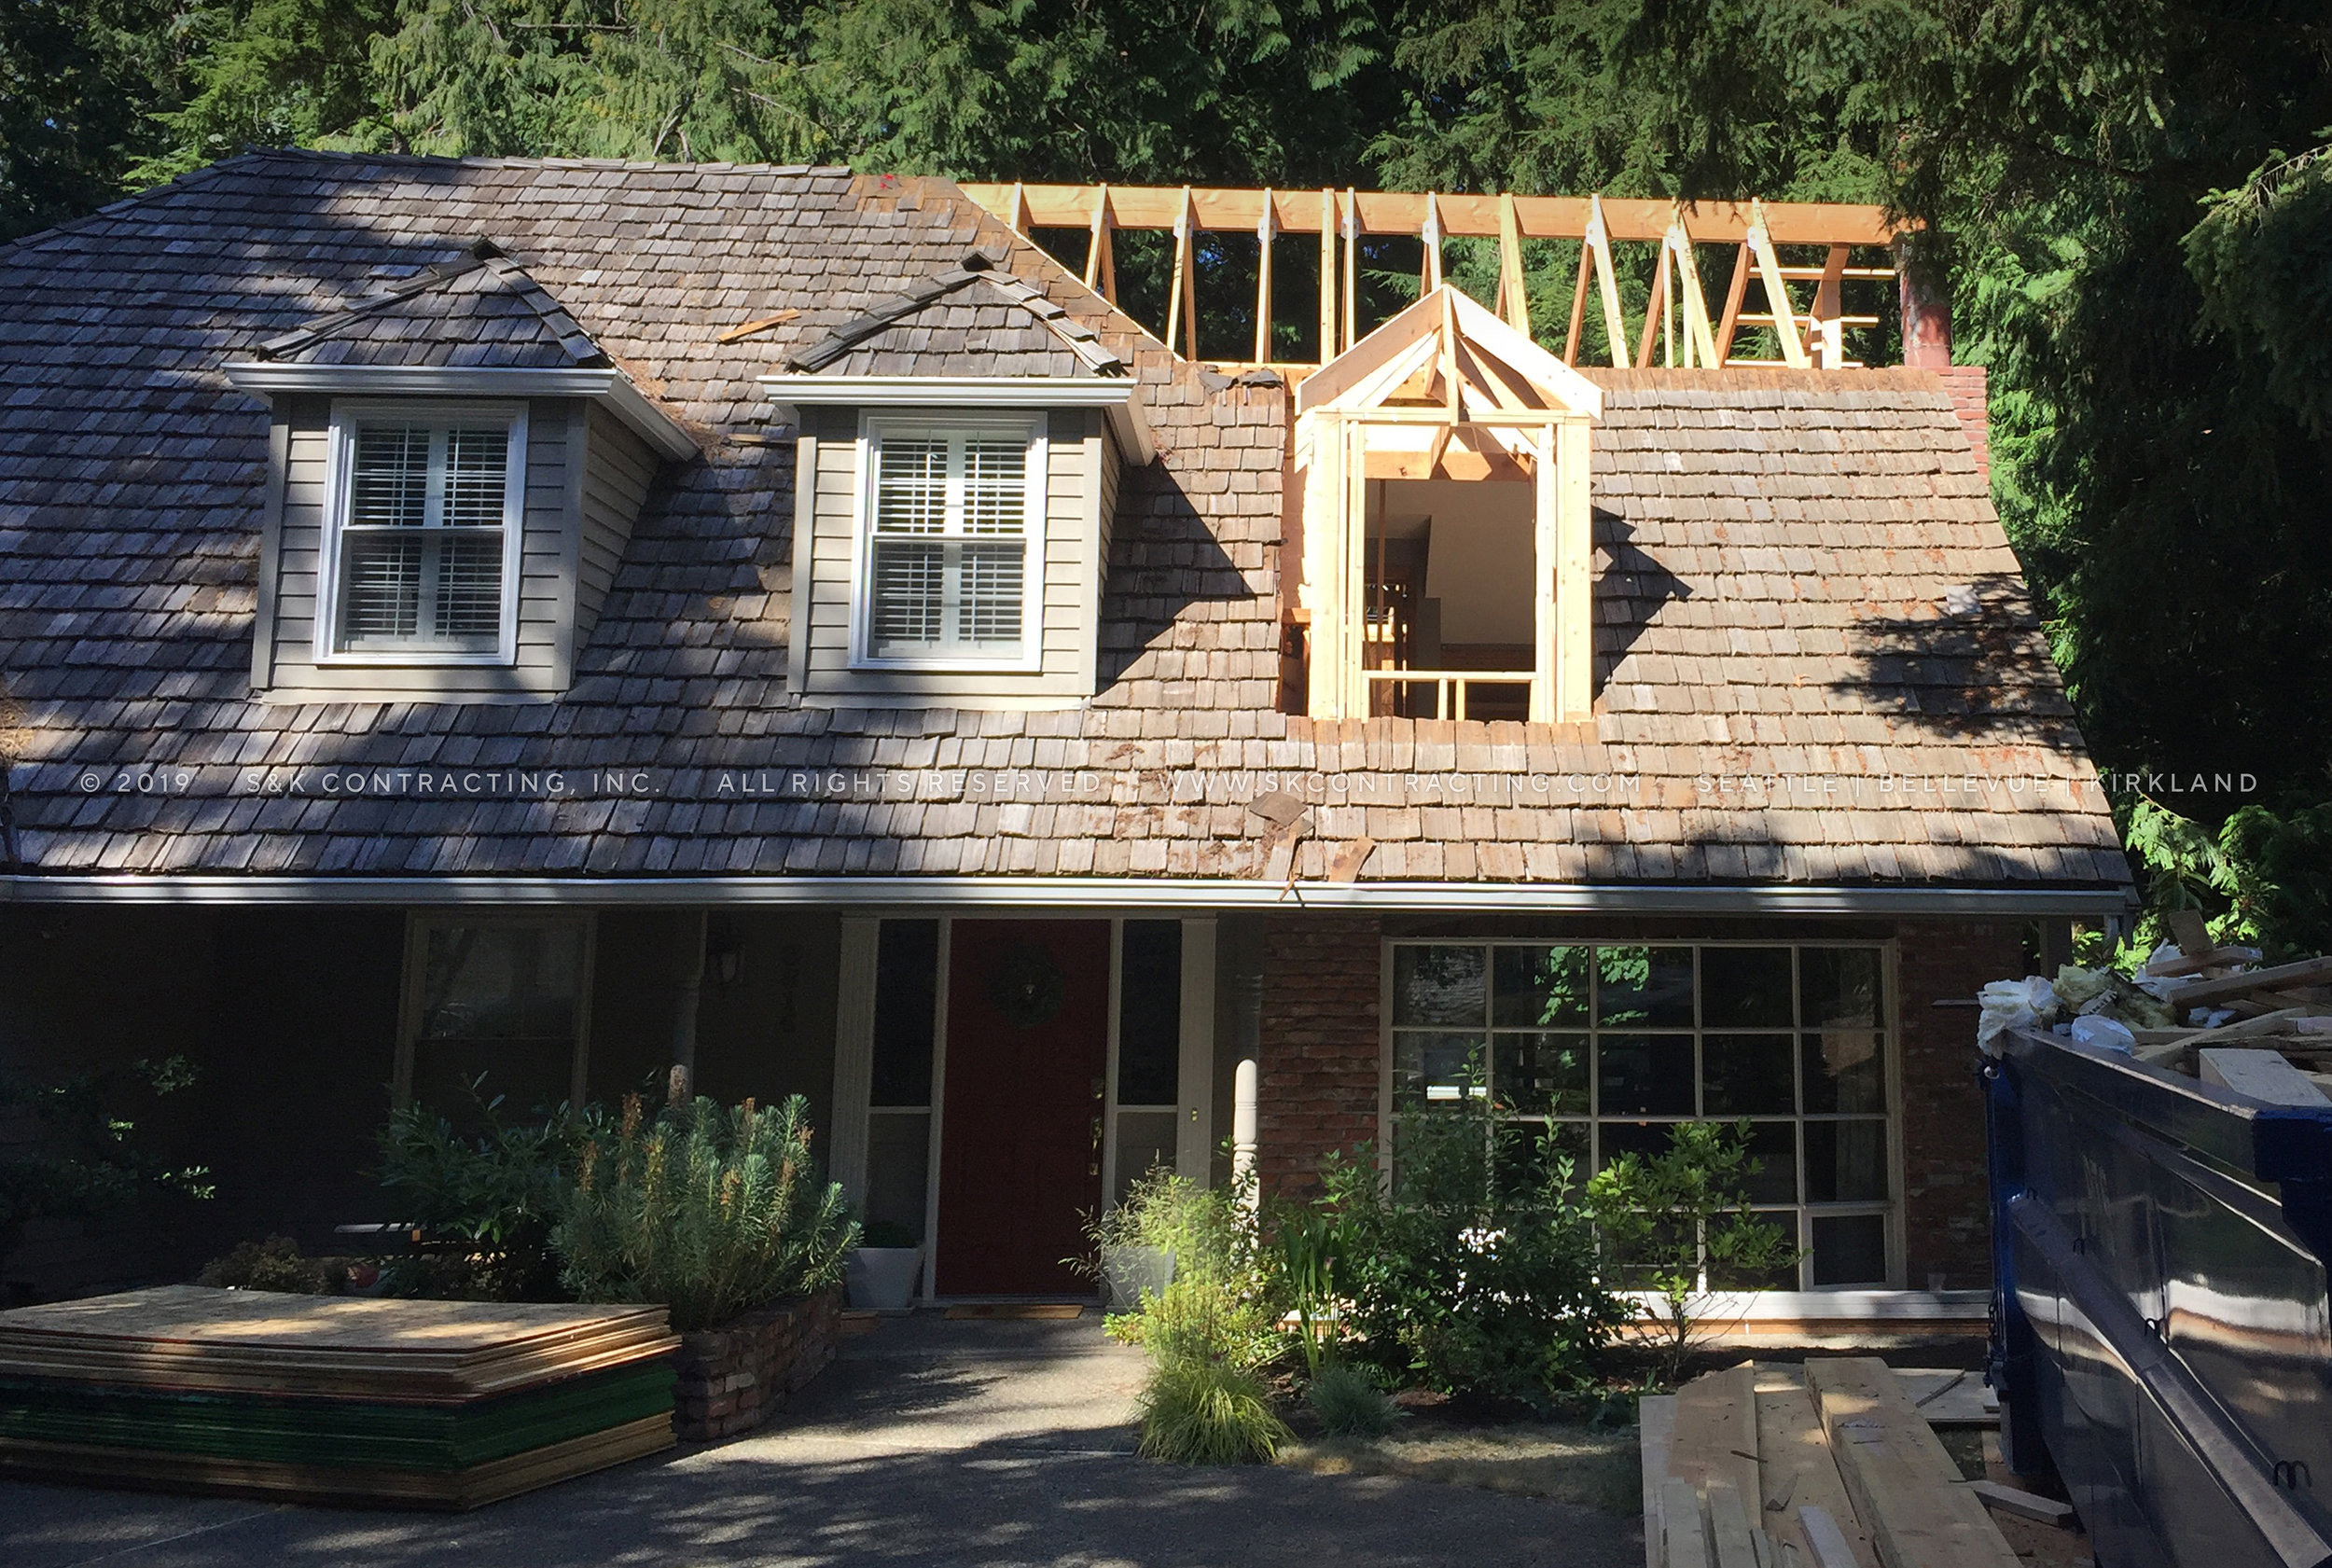 S and K Contracting [60] v7CR Sammamish Seattle Makeover Update Improvment Enahncement Second Floor Addition to Home 28 FEB 2019.jpg